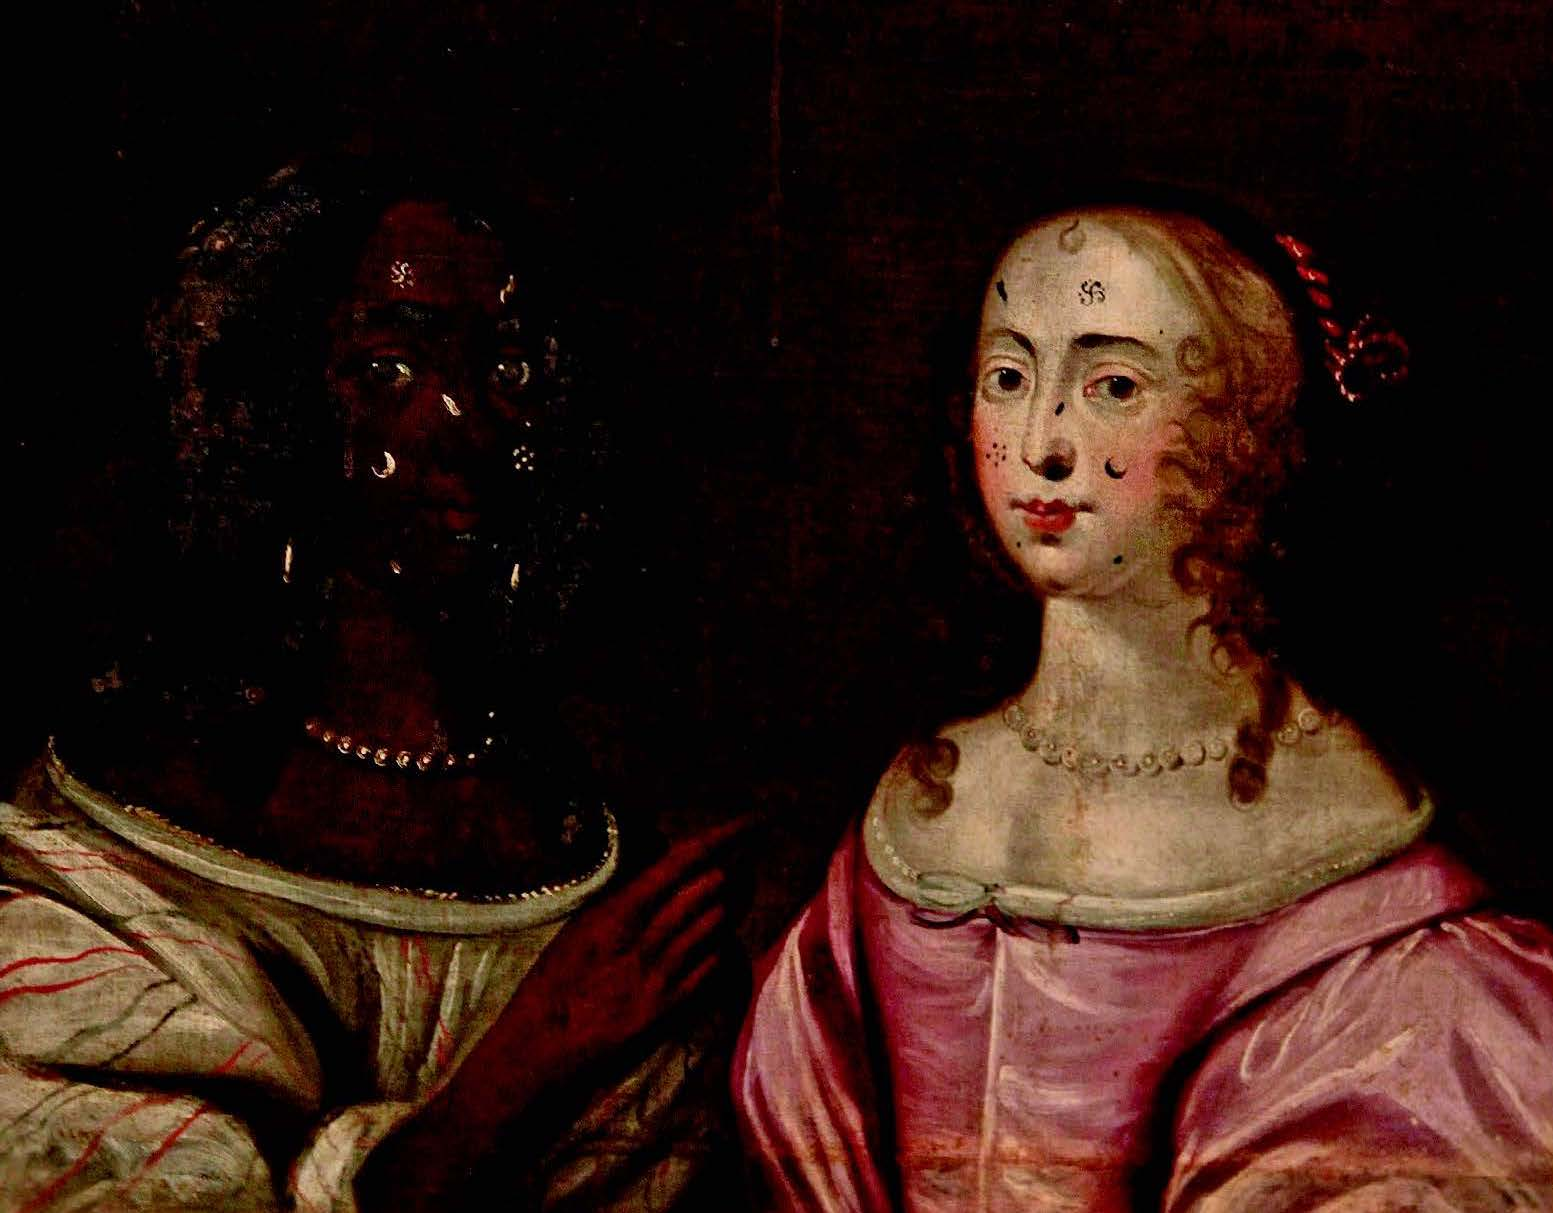 An unusual Cromwell era painting of two women